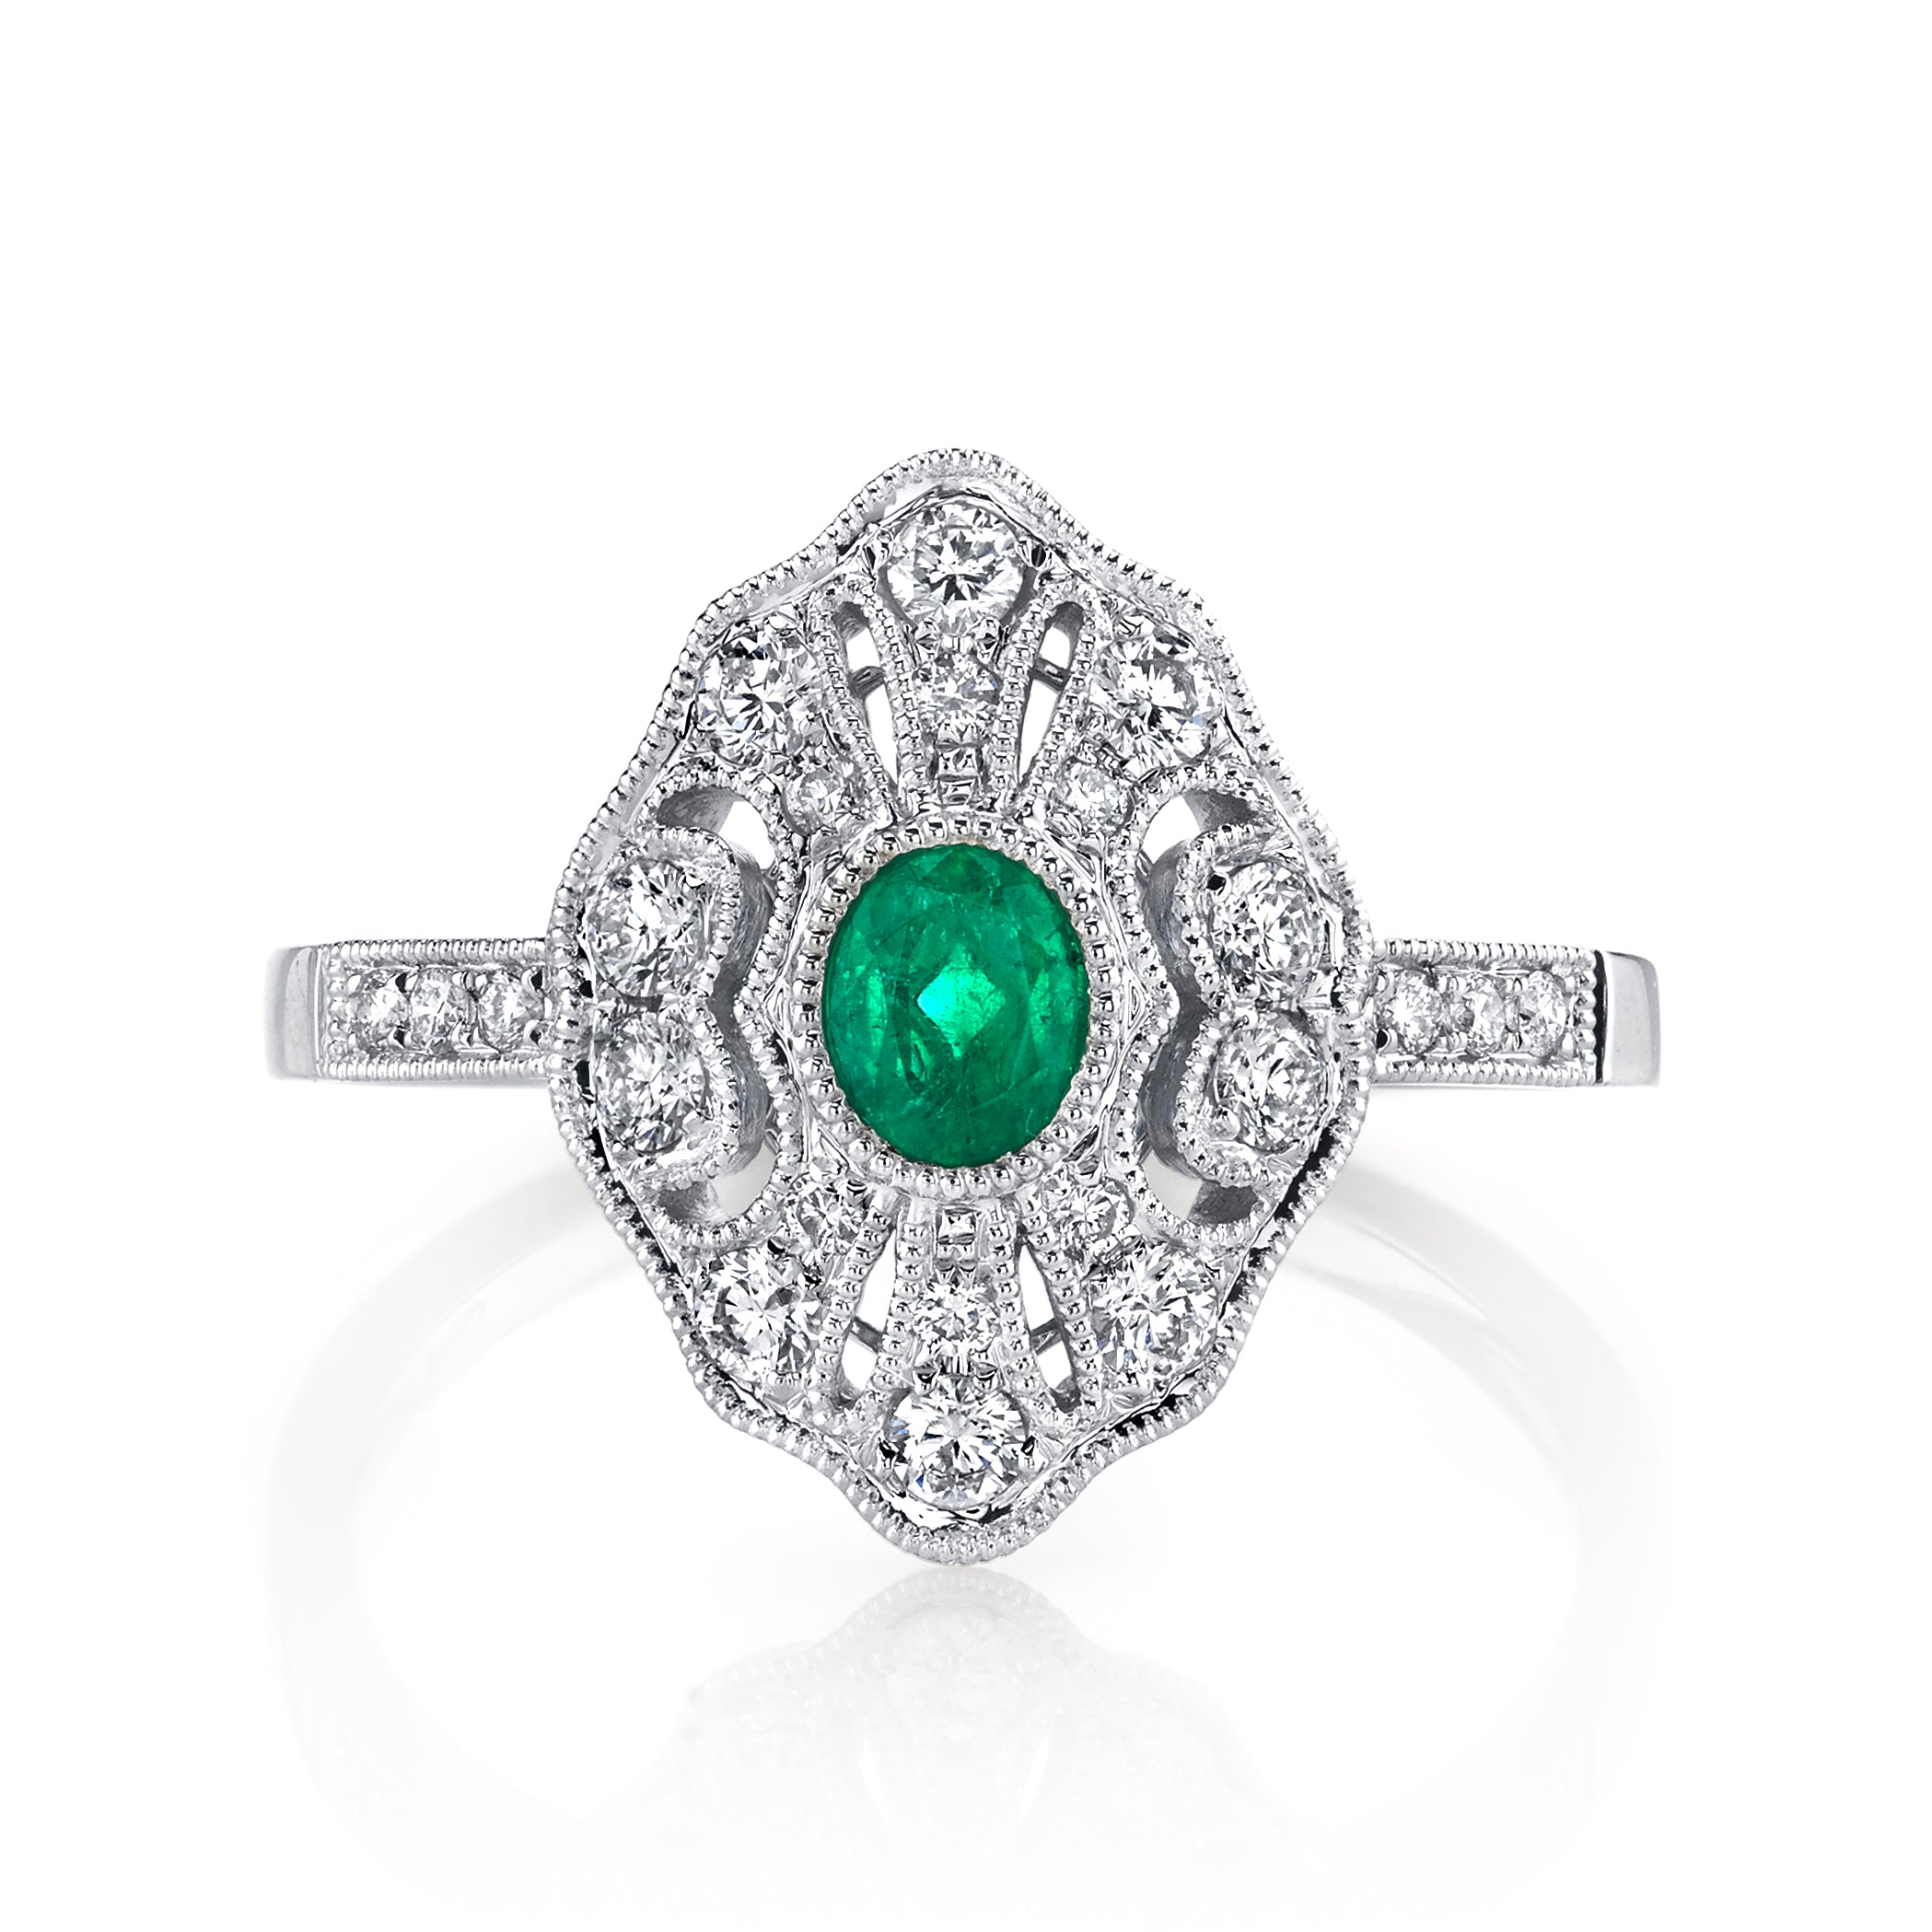 Mars Jewelry 14K White Gold Fashion Ring W/ Emerald Accent Stones, Filigree & Milgrain Detailing 26881